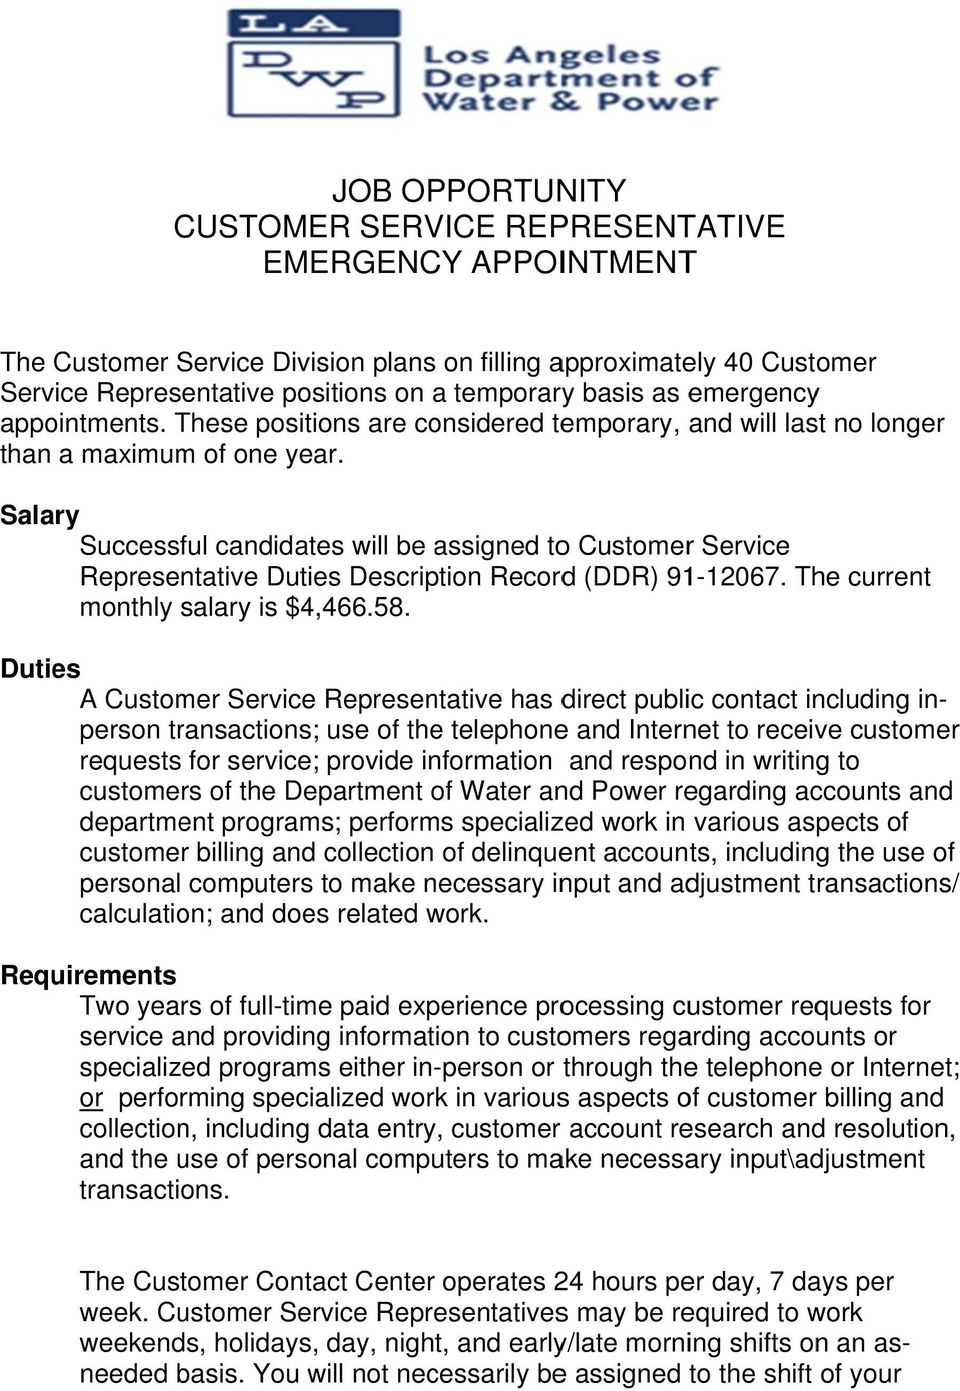 Salary Successful candidates will be assigned too Customerr Service Representative Duties Description Recordd (DDR) 91-12067. The current monthly salary is $4,466.58.